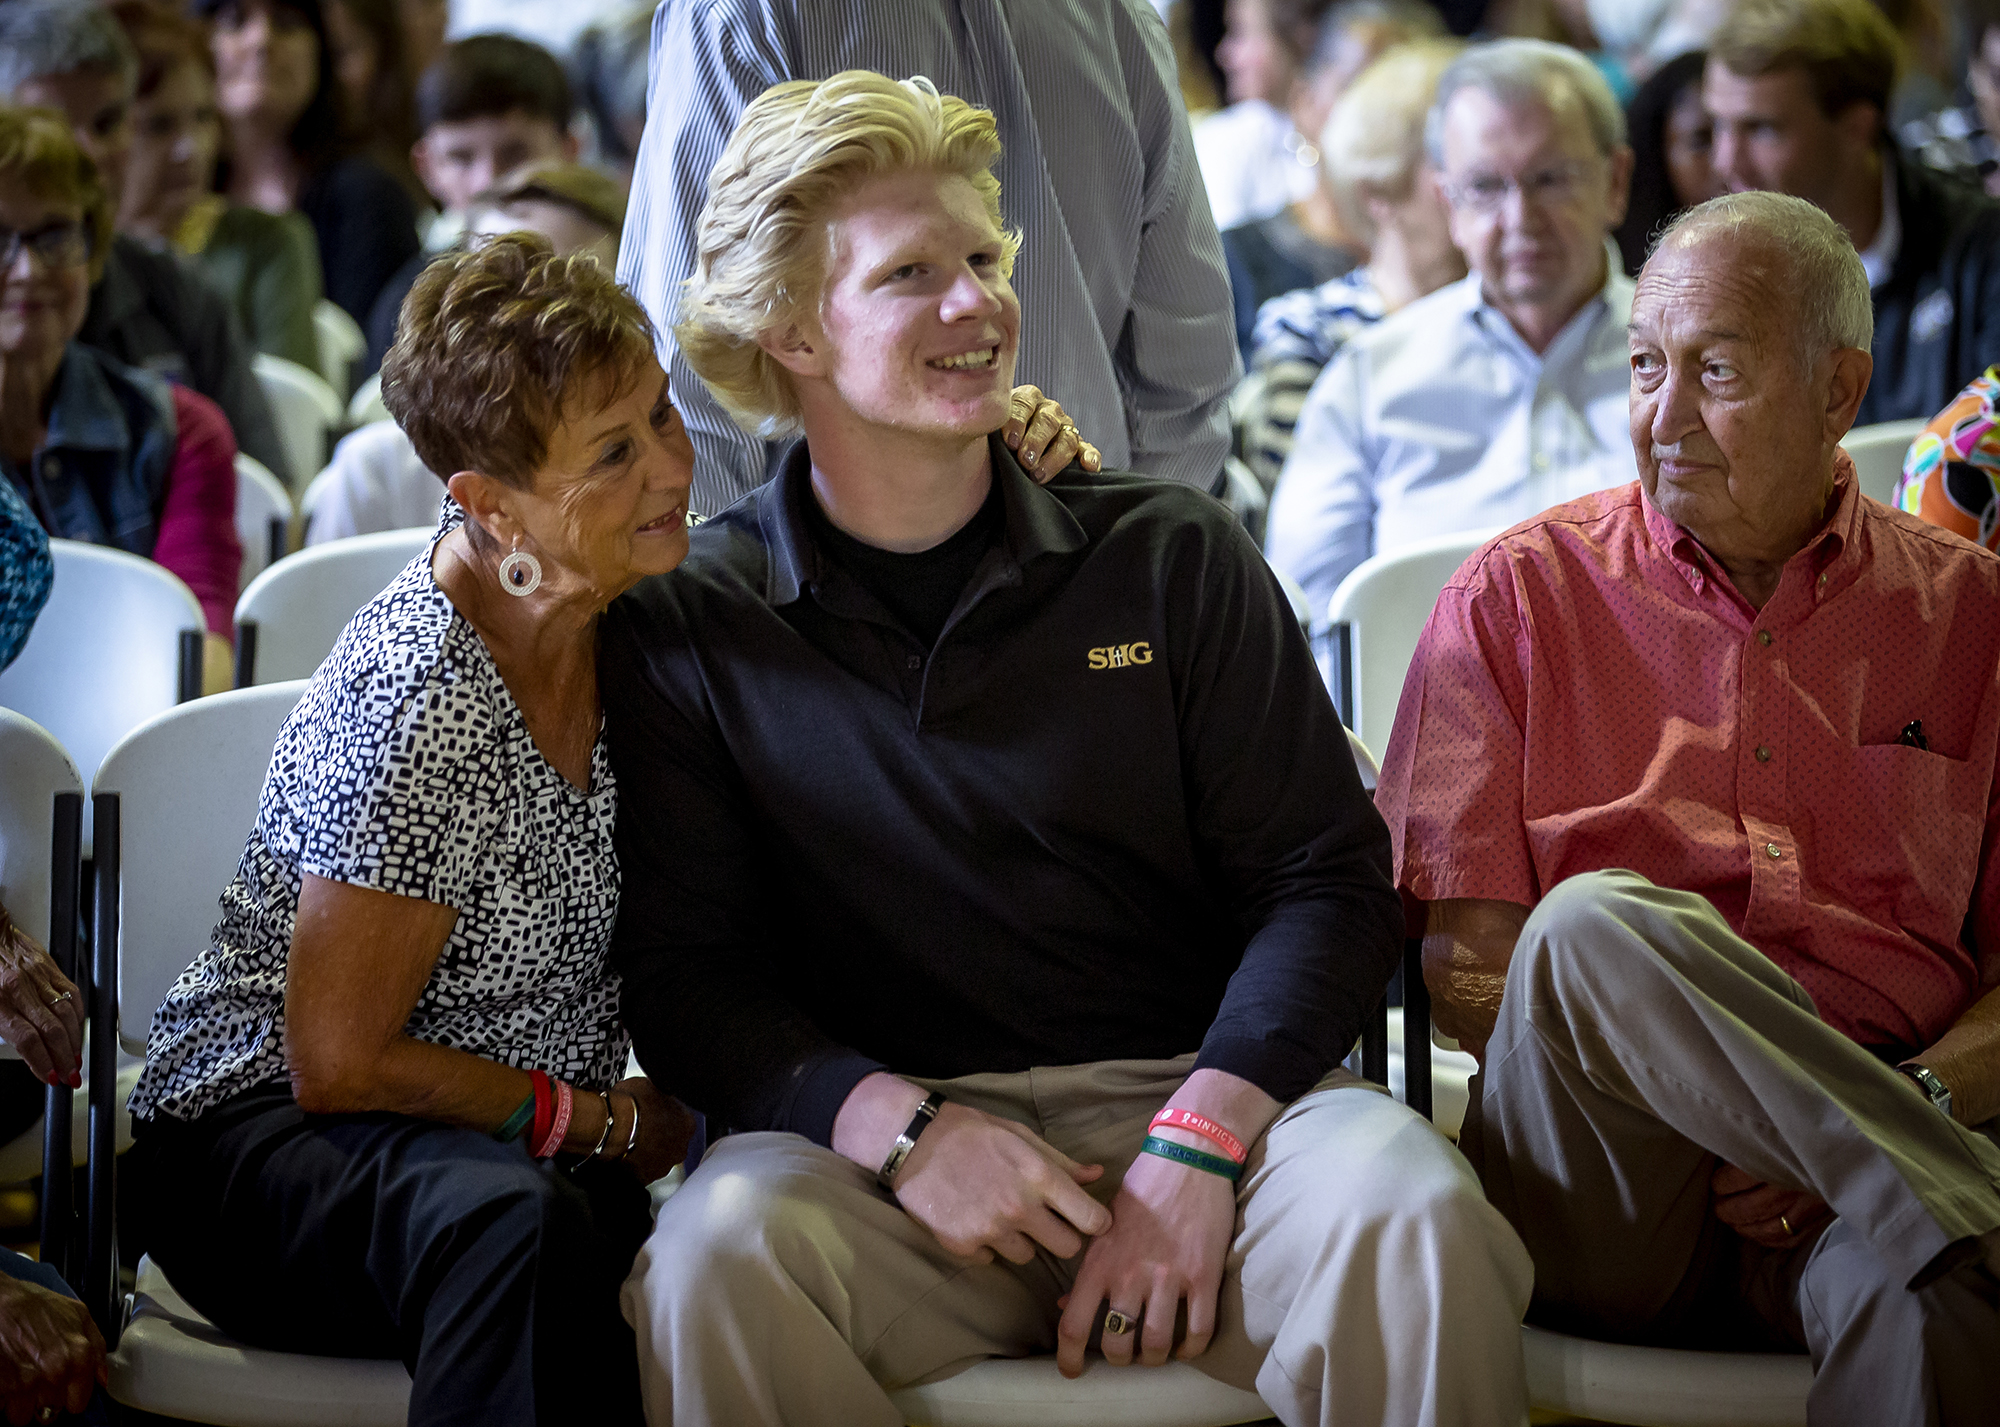 Sacred Heart-Griffins senior Michael Goldasich, center, joins his grandparents Betty Goldasich, left, and Mike Goldasich, along his with his father's godmother, Barb Kern (Not Pictured), during the first SHG Grandparent Mass inside the gymnasium at SHG's East Campus, Tuesday, Sept. 25, 2018, in Springfield, Ill. Over 250 grandparents joined with their SHG students for an all school mass followed by cookies that were baked by the cafeteria staff. [Justin L. Fowler/The State Journal-Register]